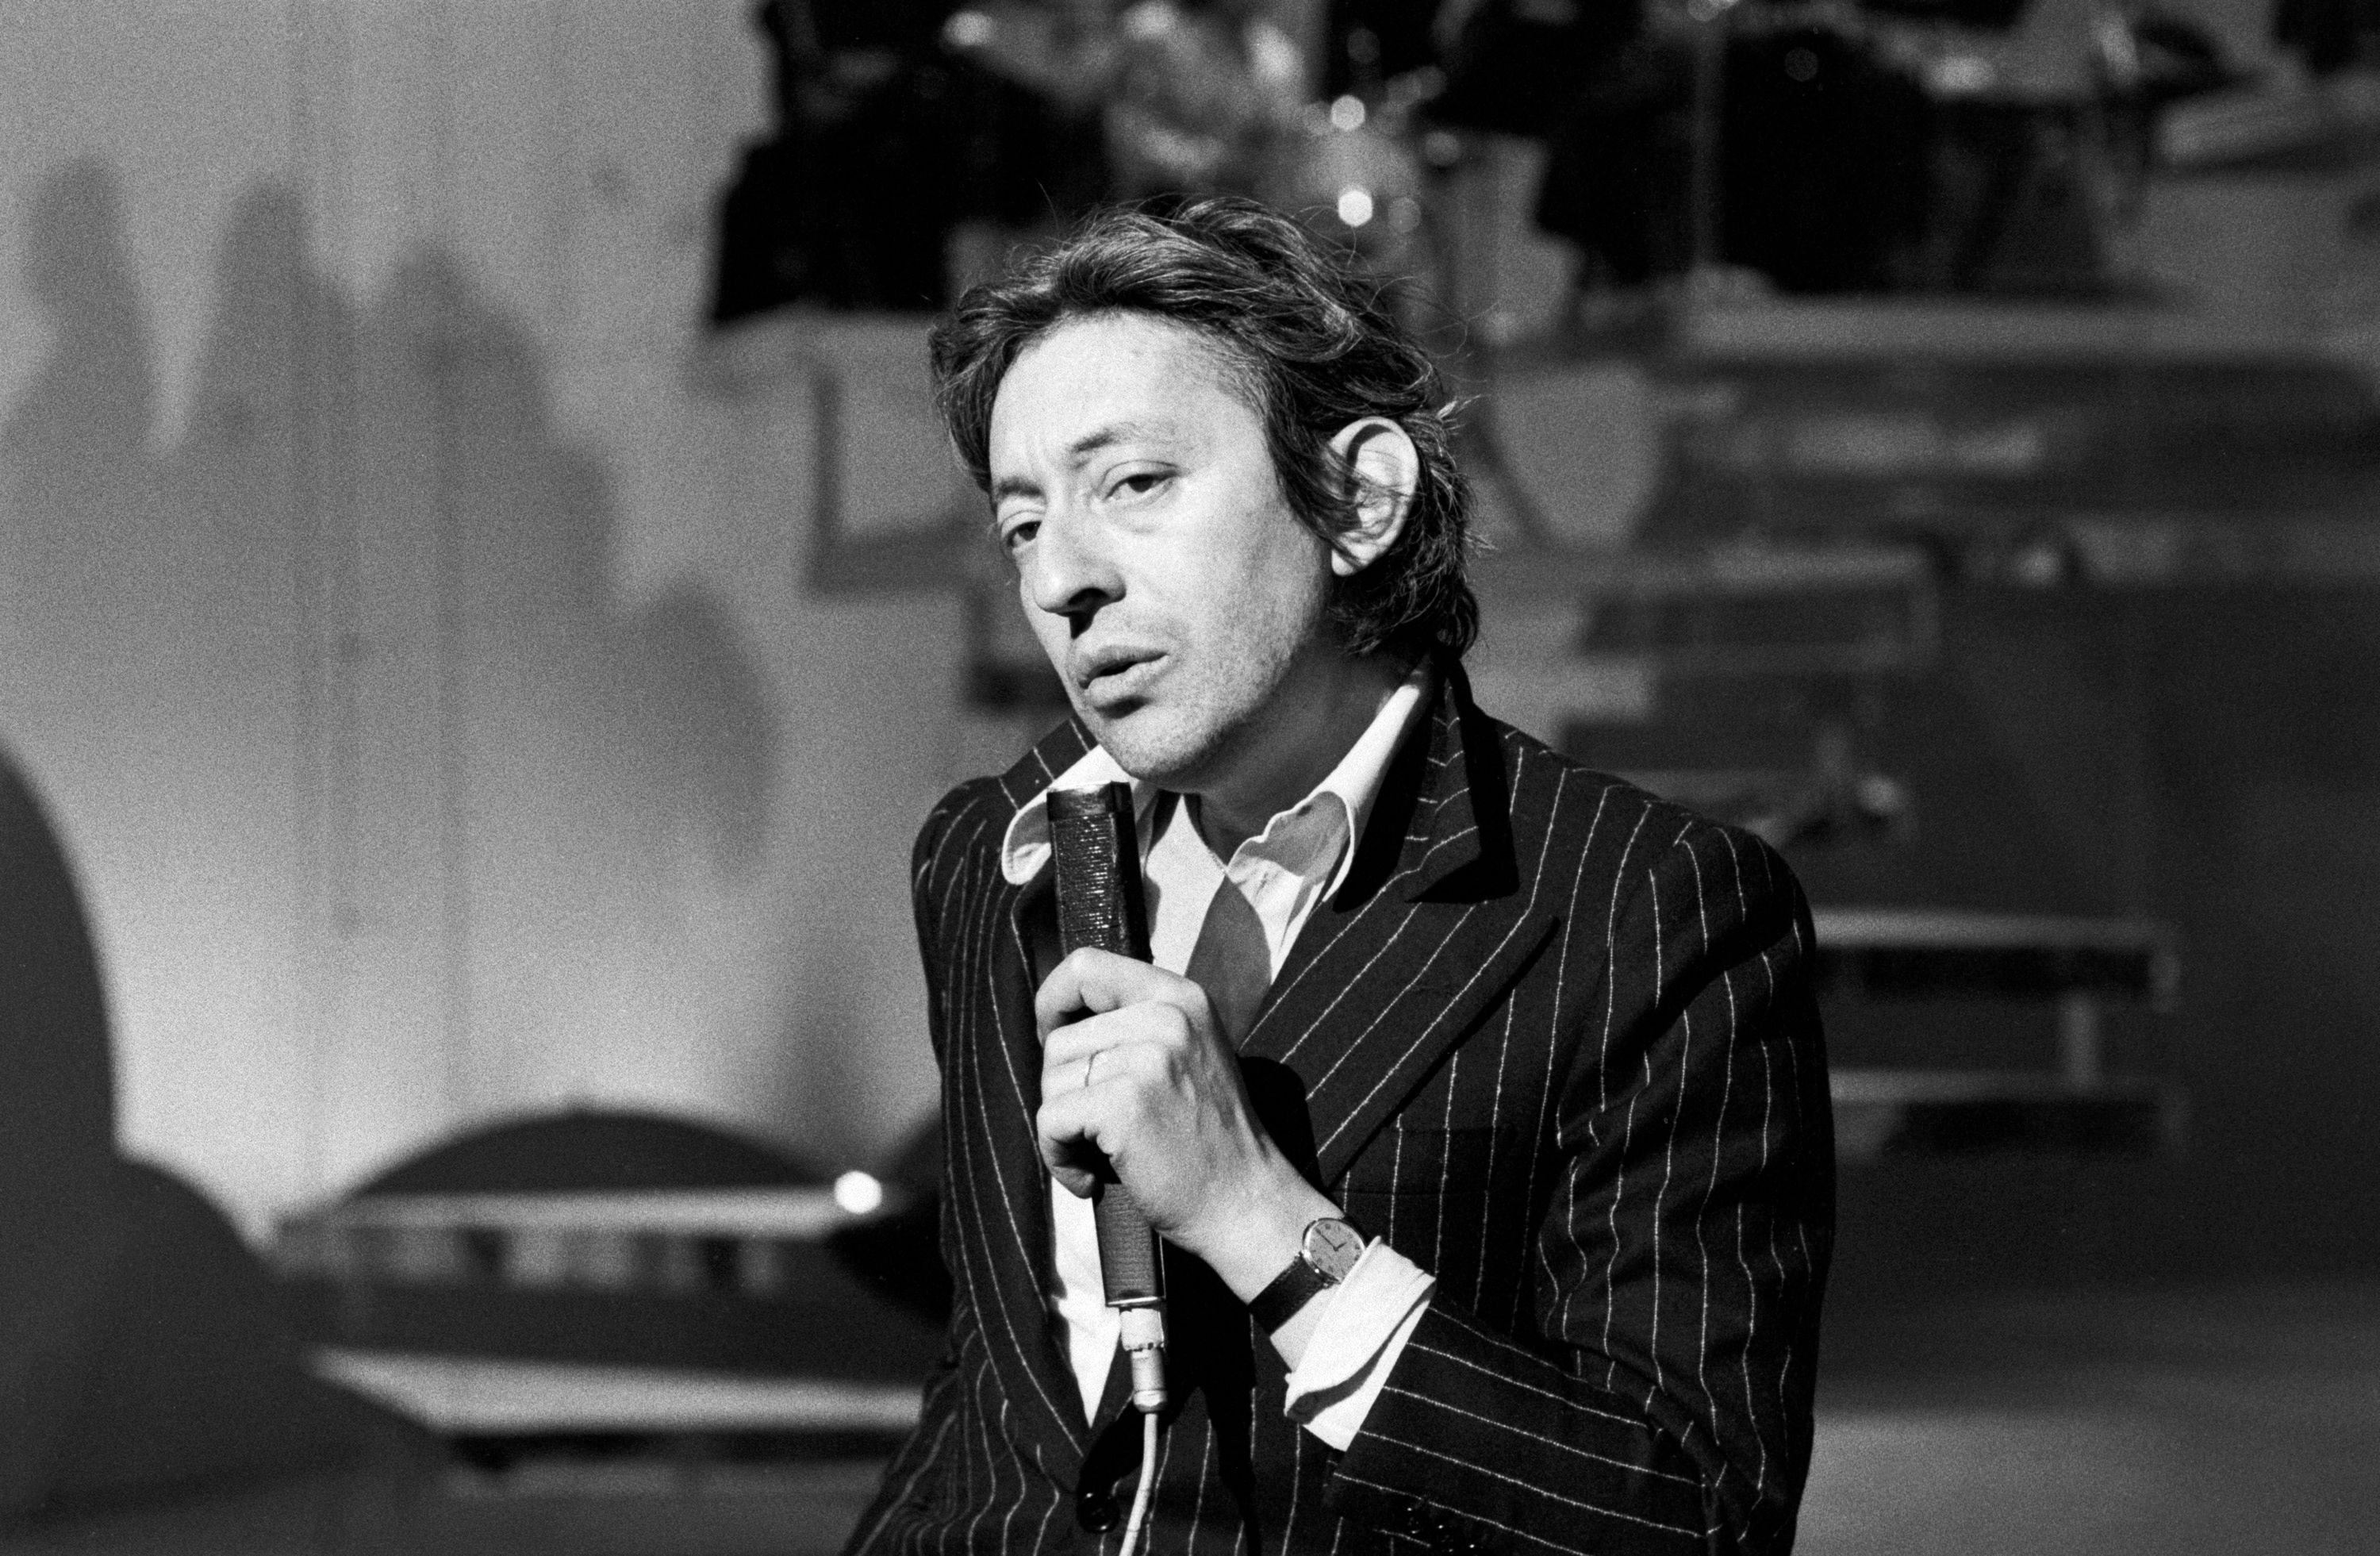 L'inoubliable Serge Gainsbourg. l Source : Getty Images